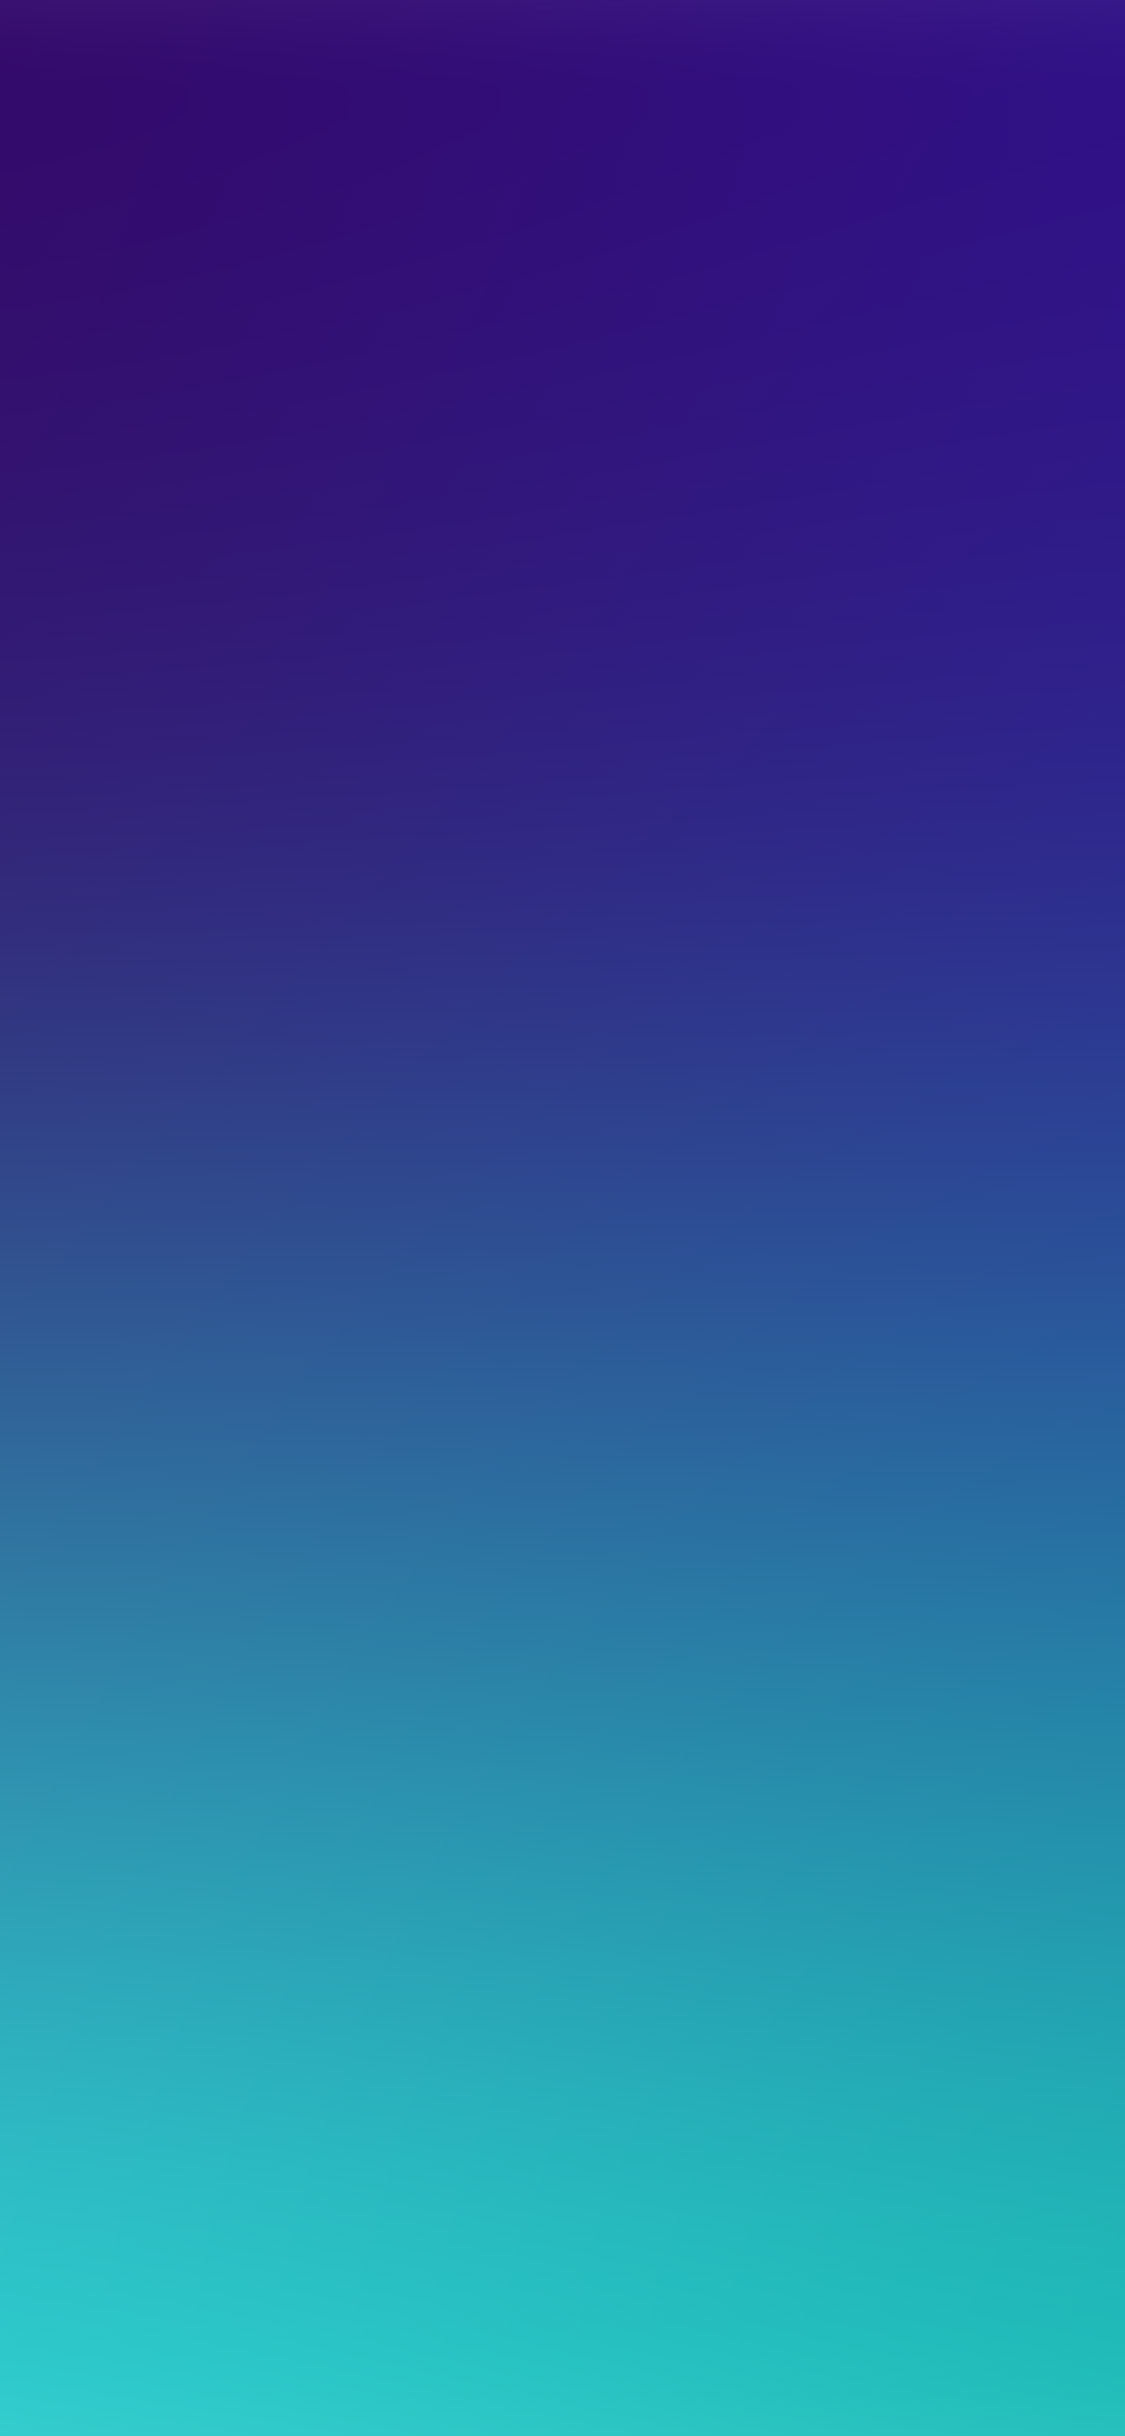 iPhonexpapers.com-Apple-iPhone-wallpaper-sn07-blue-sky-blur-gradation